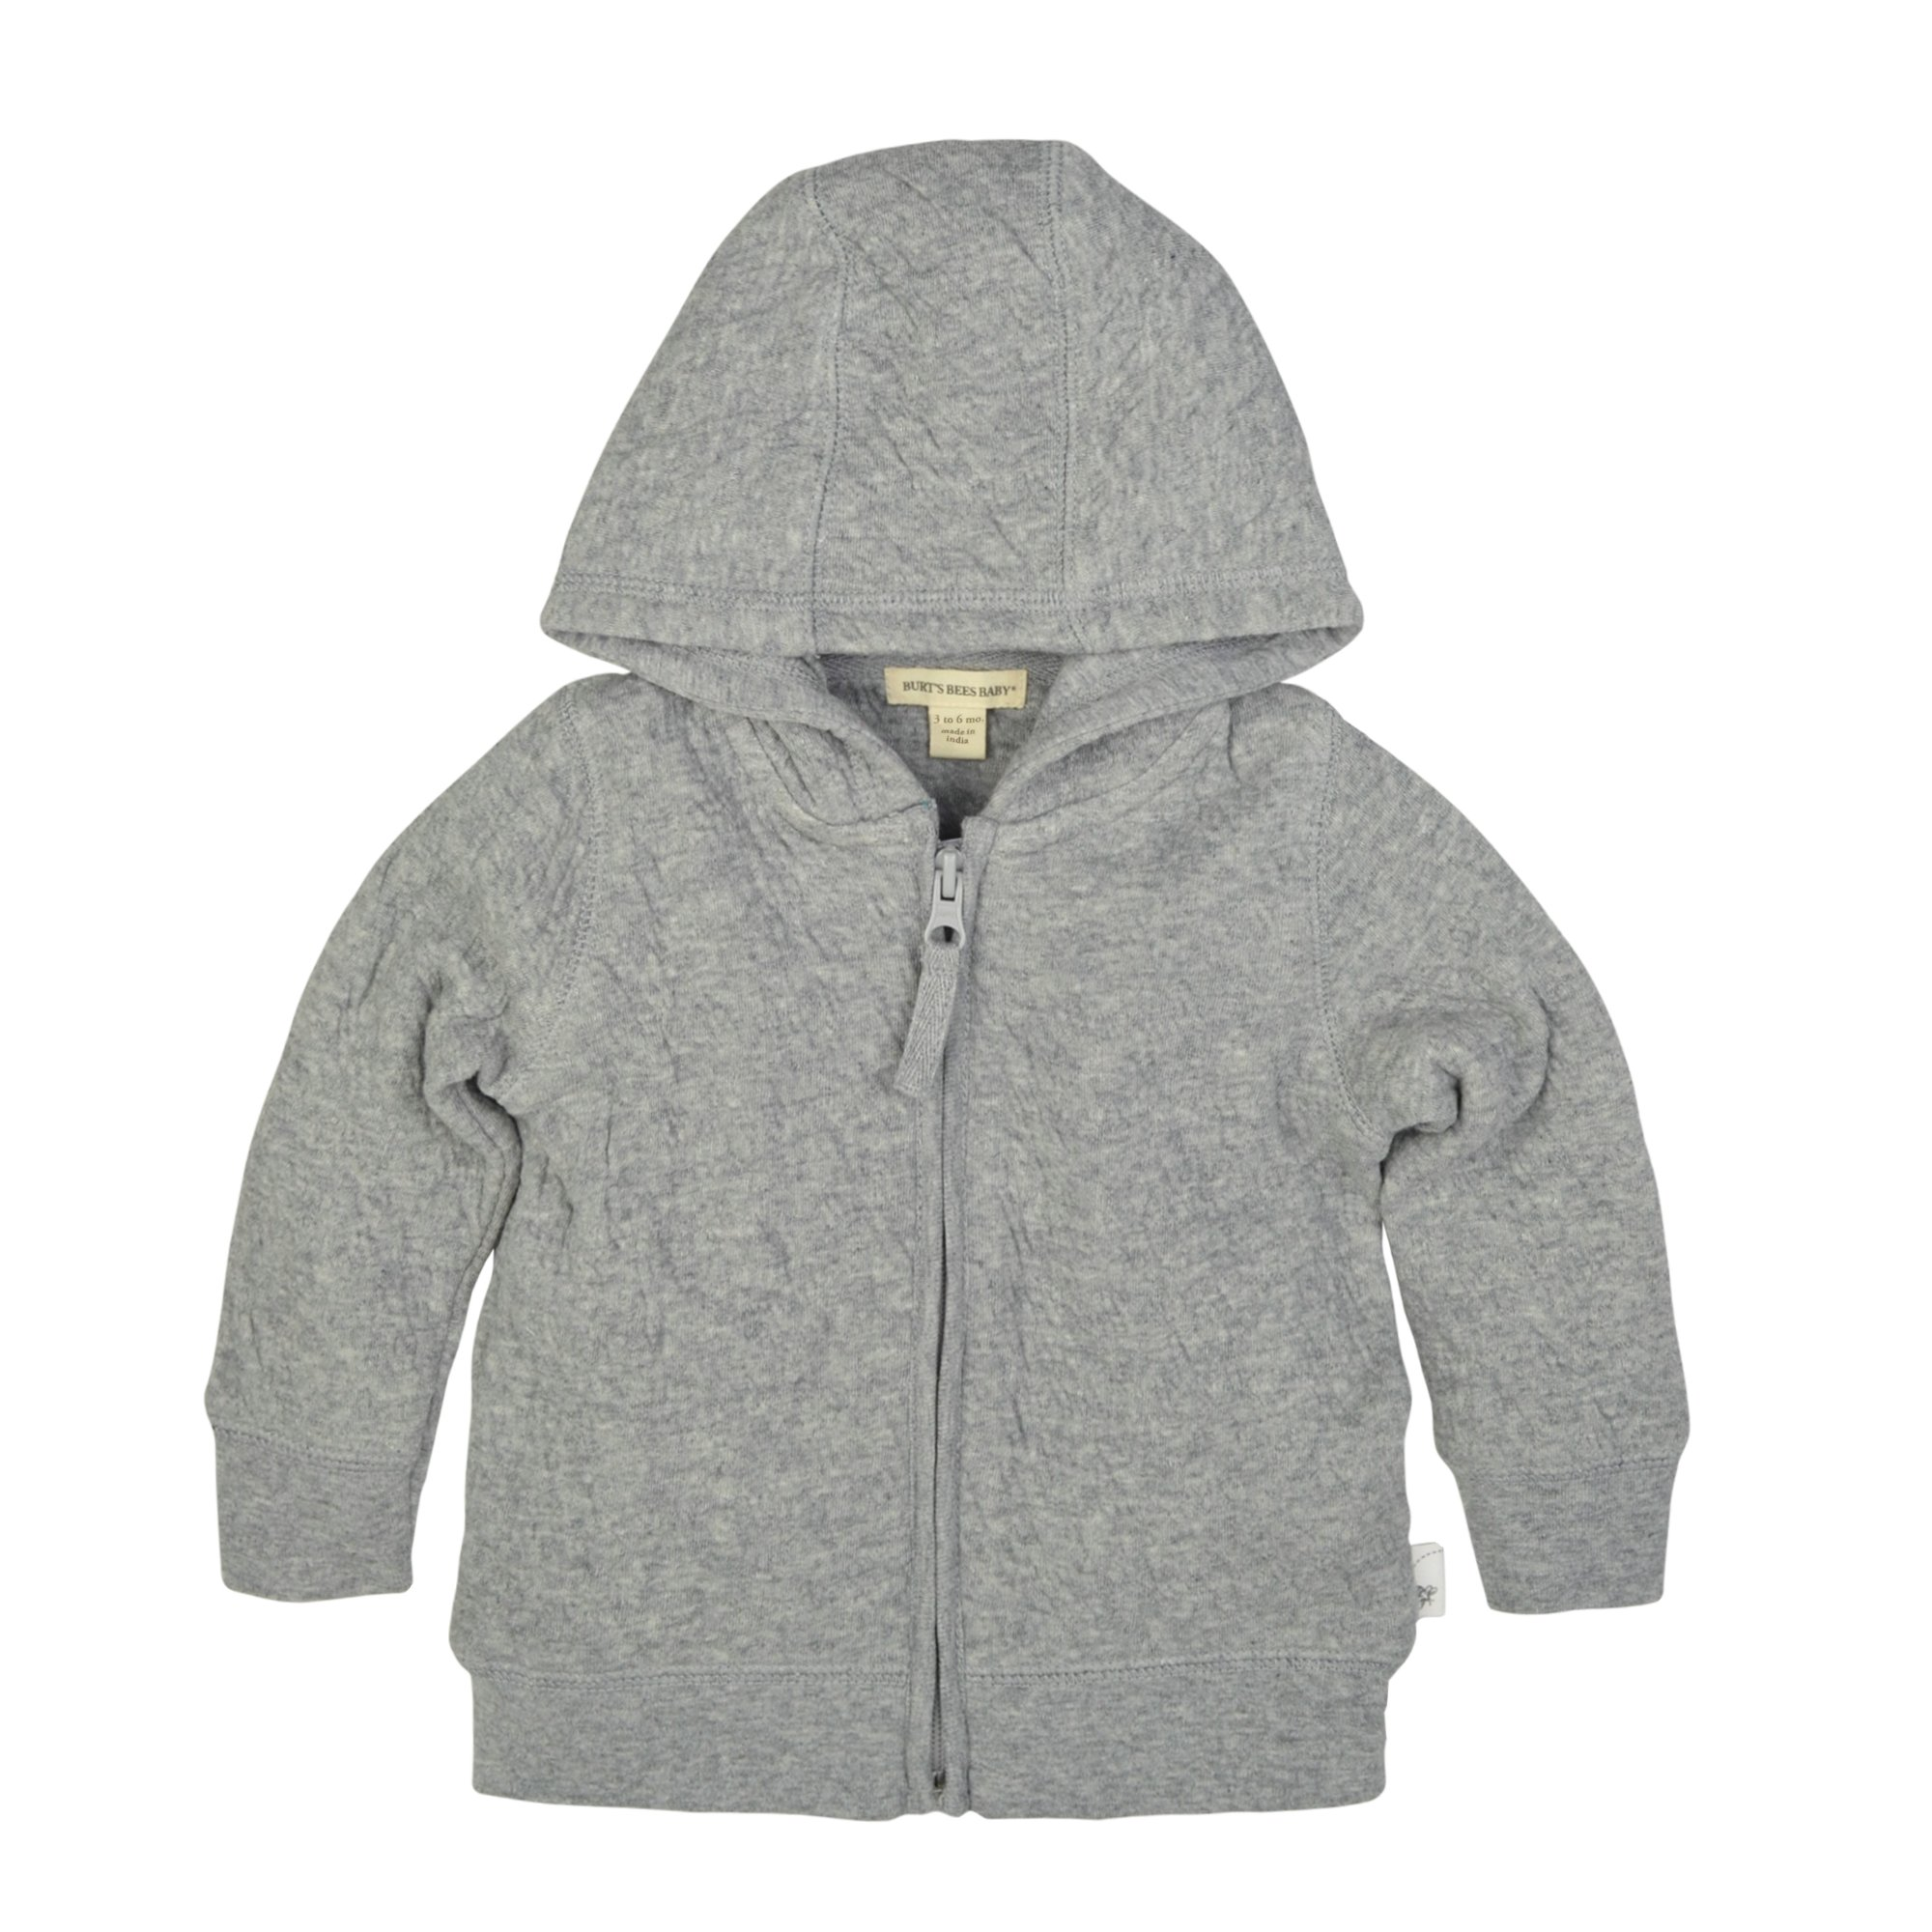 Burt's Bees Baby Unisex Baby Sweatshirts, Lightweight Zip-Up Jackets & Hooded Coats, Organic Cotton, Heather Grey Quilted Jacket, 0-3 Months by Burt's Bees Baby